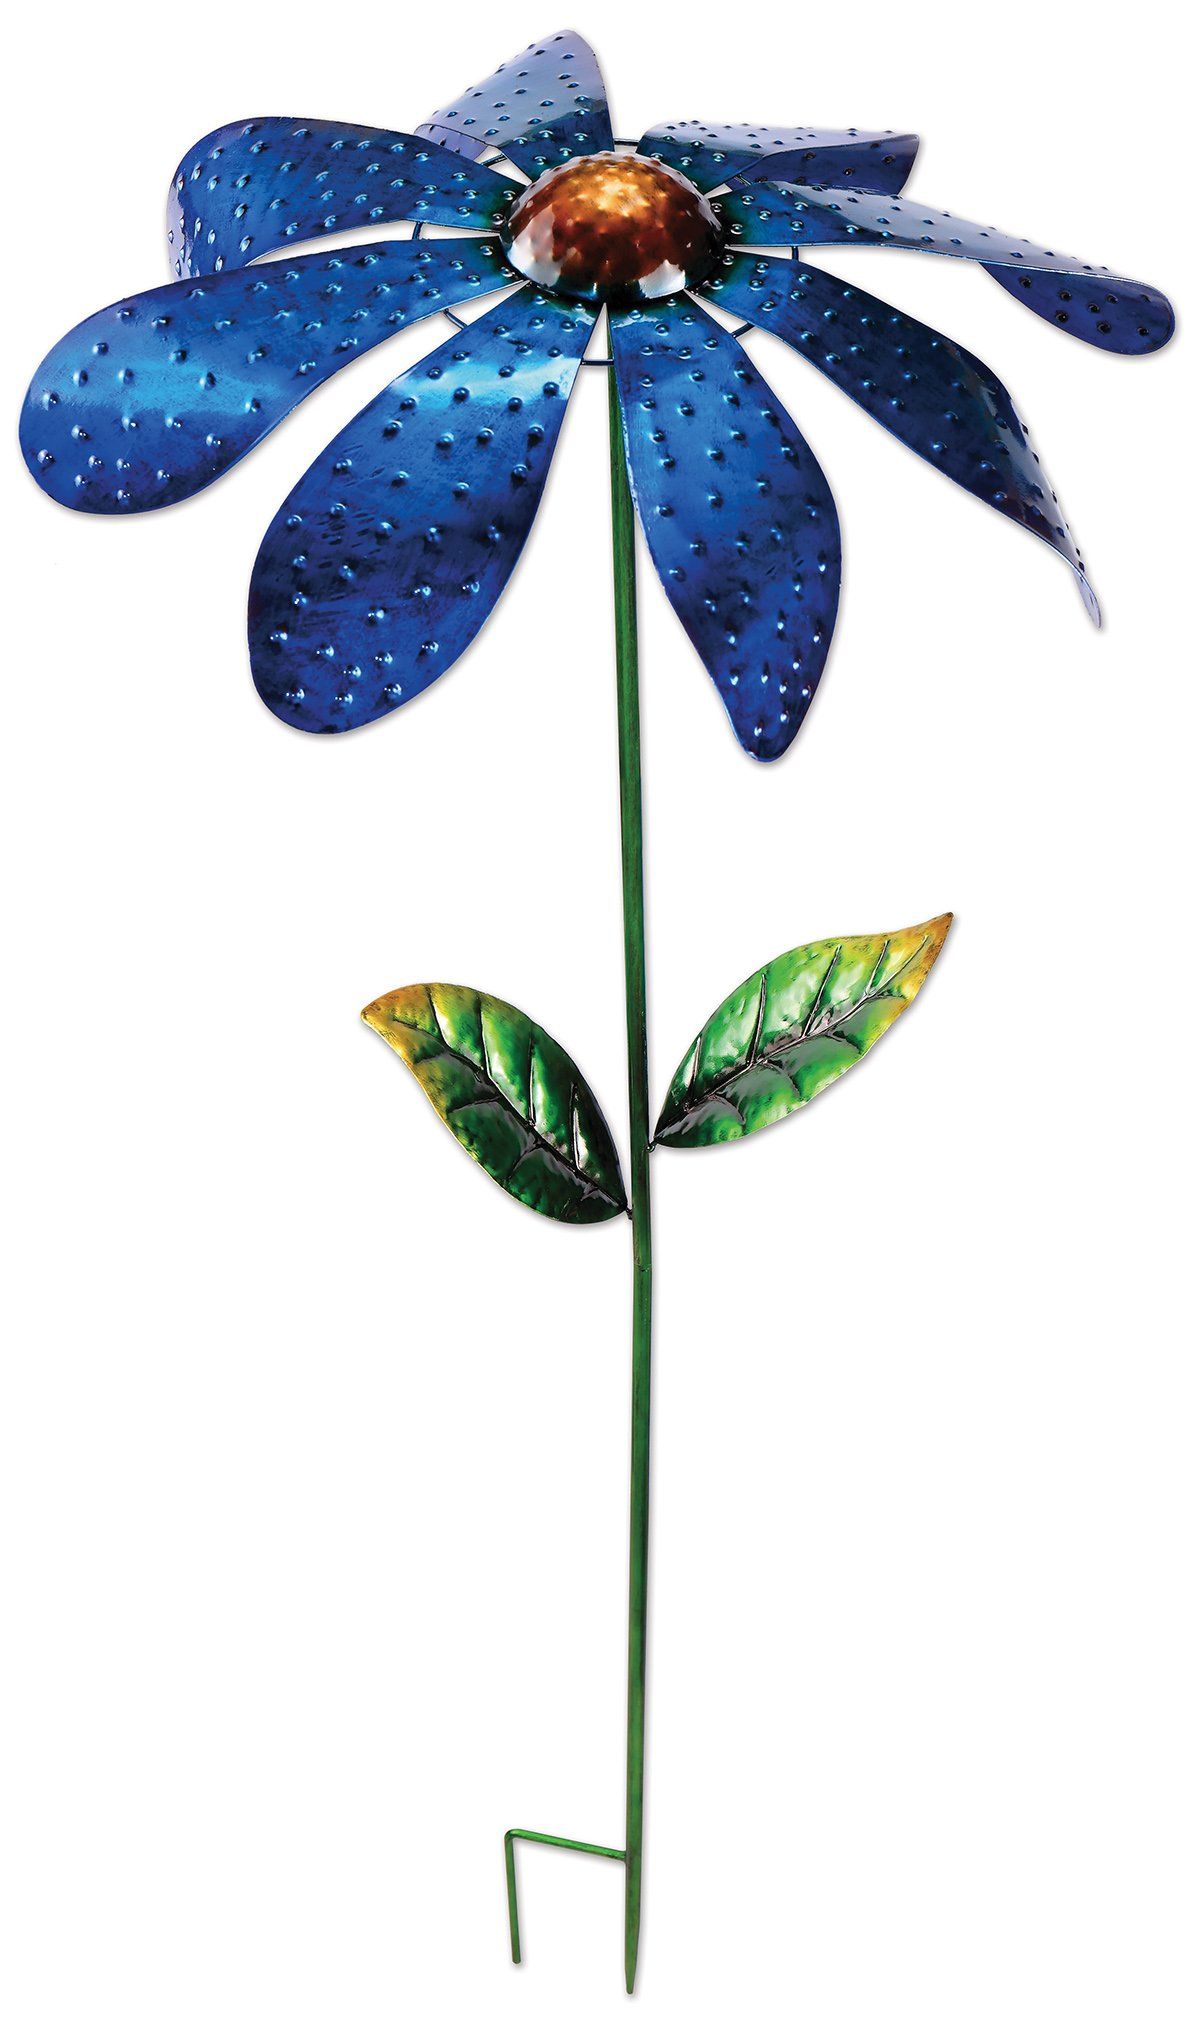 Sunset Vista Designs 92665 Large Blue Daisy Spinner Stake